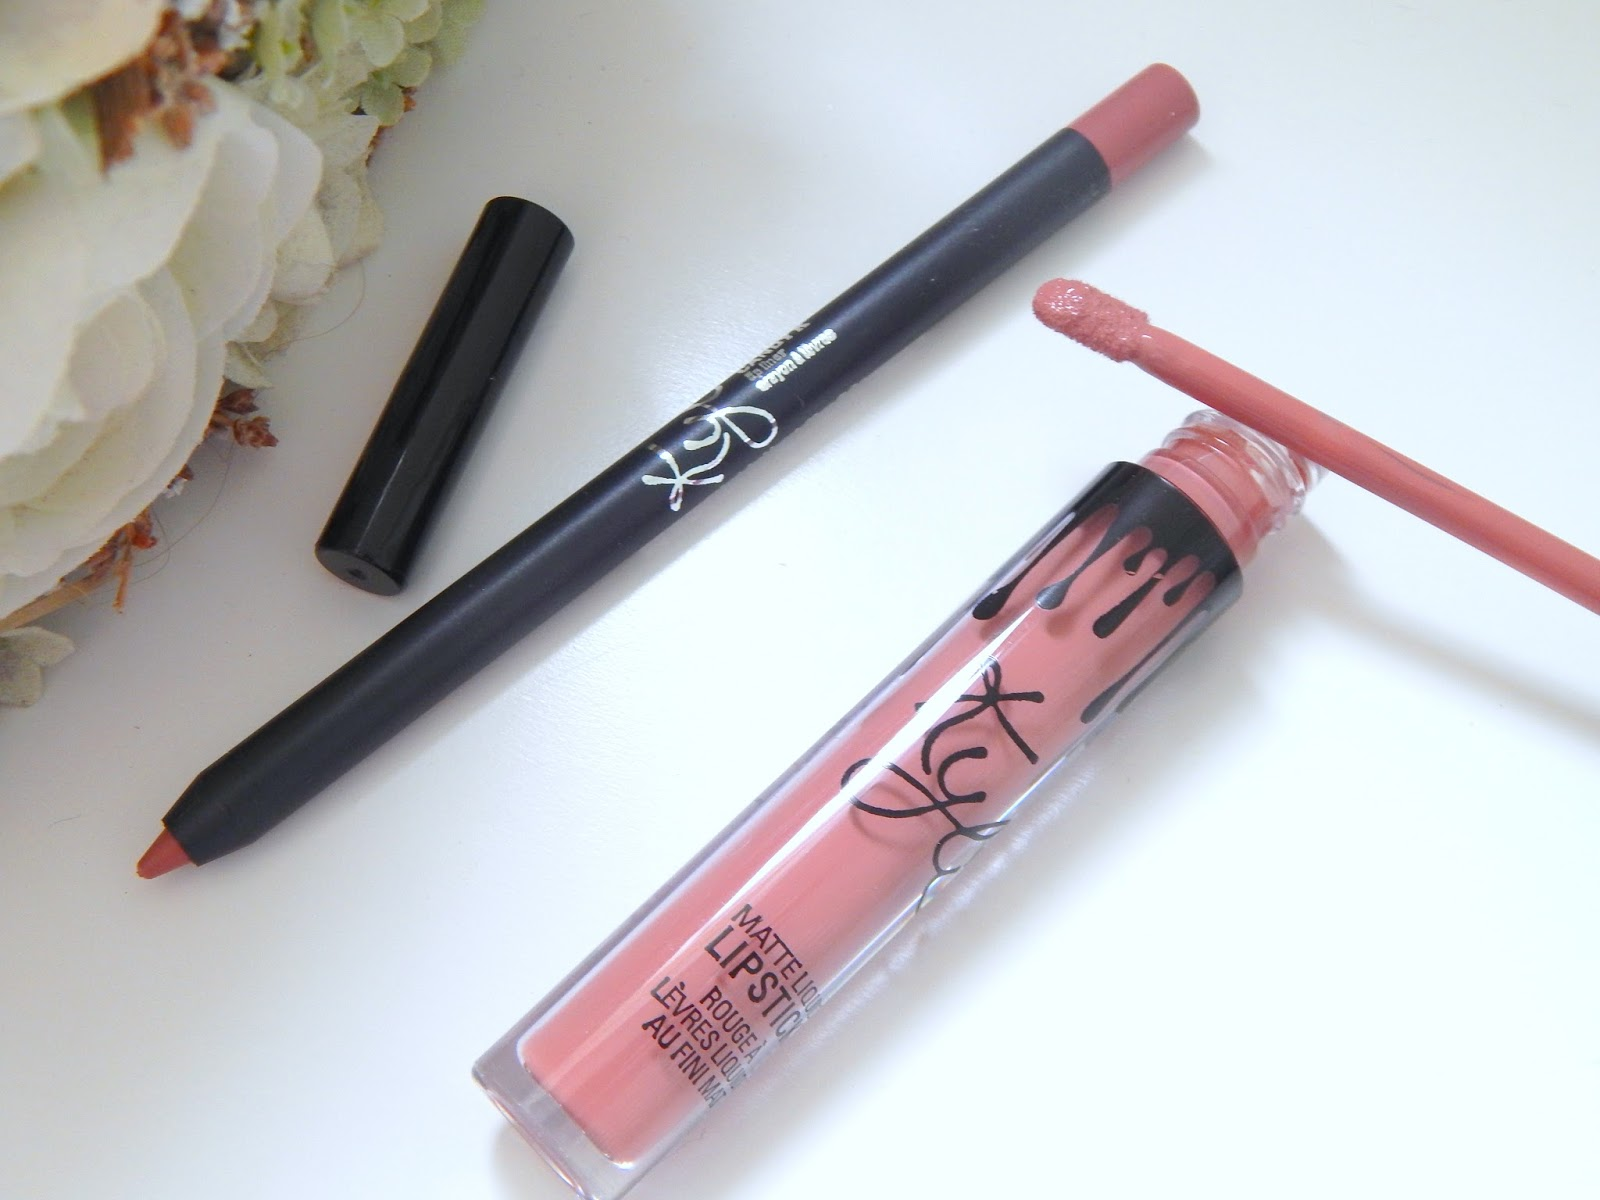 Kylie Lip Kit Candy K Review and Swatches